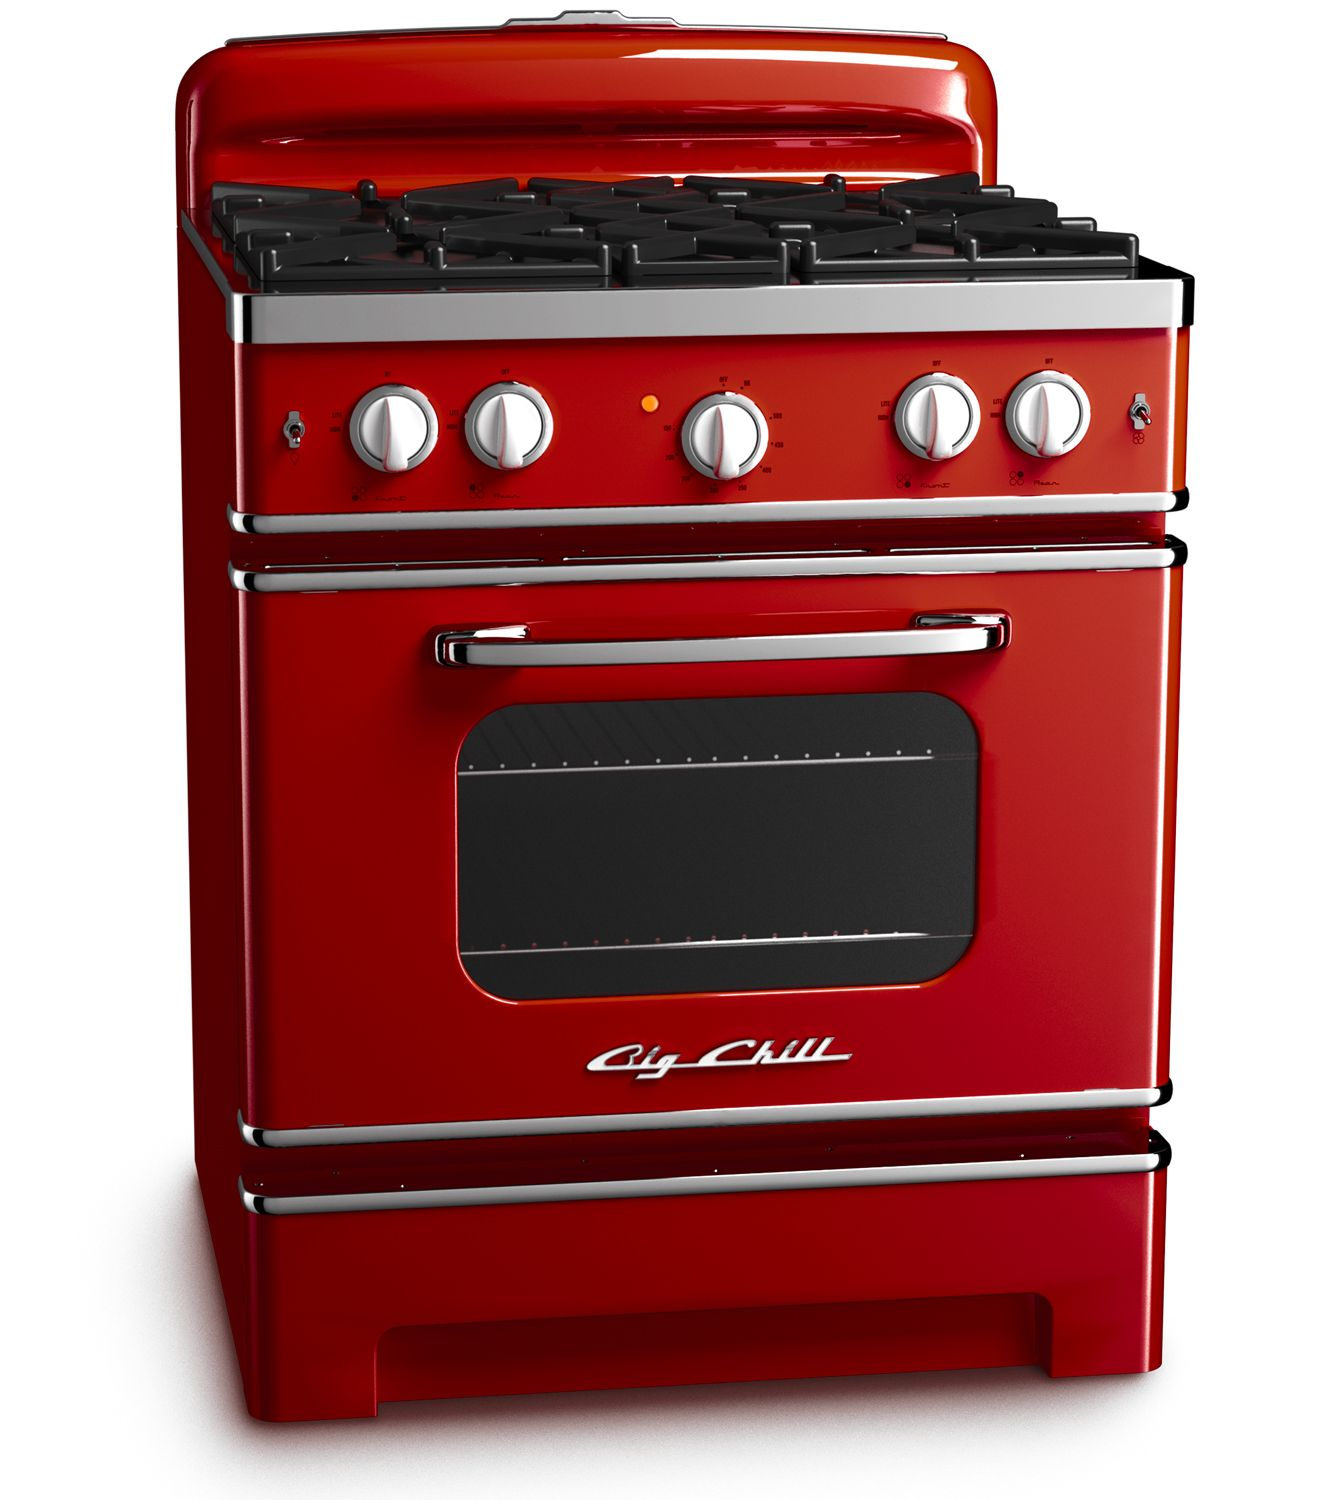 cherry red retro stove by big chill i would have loved to this